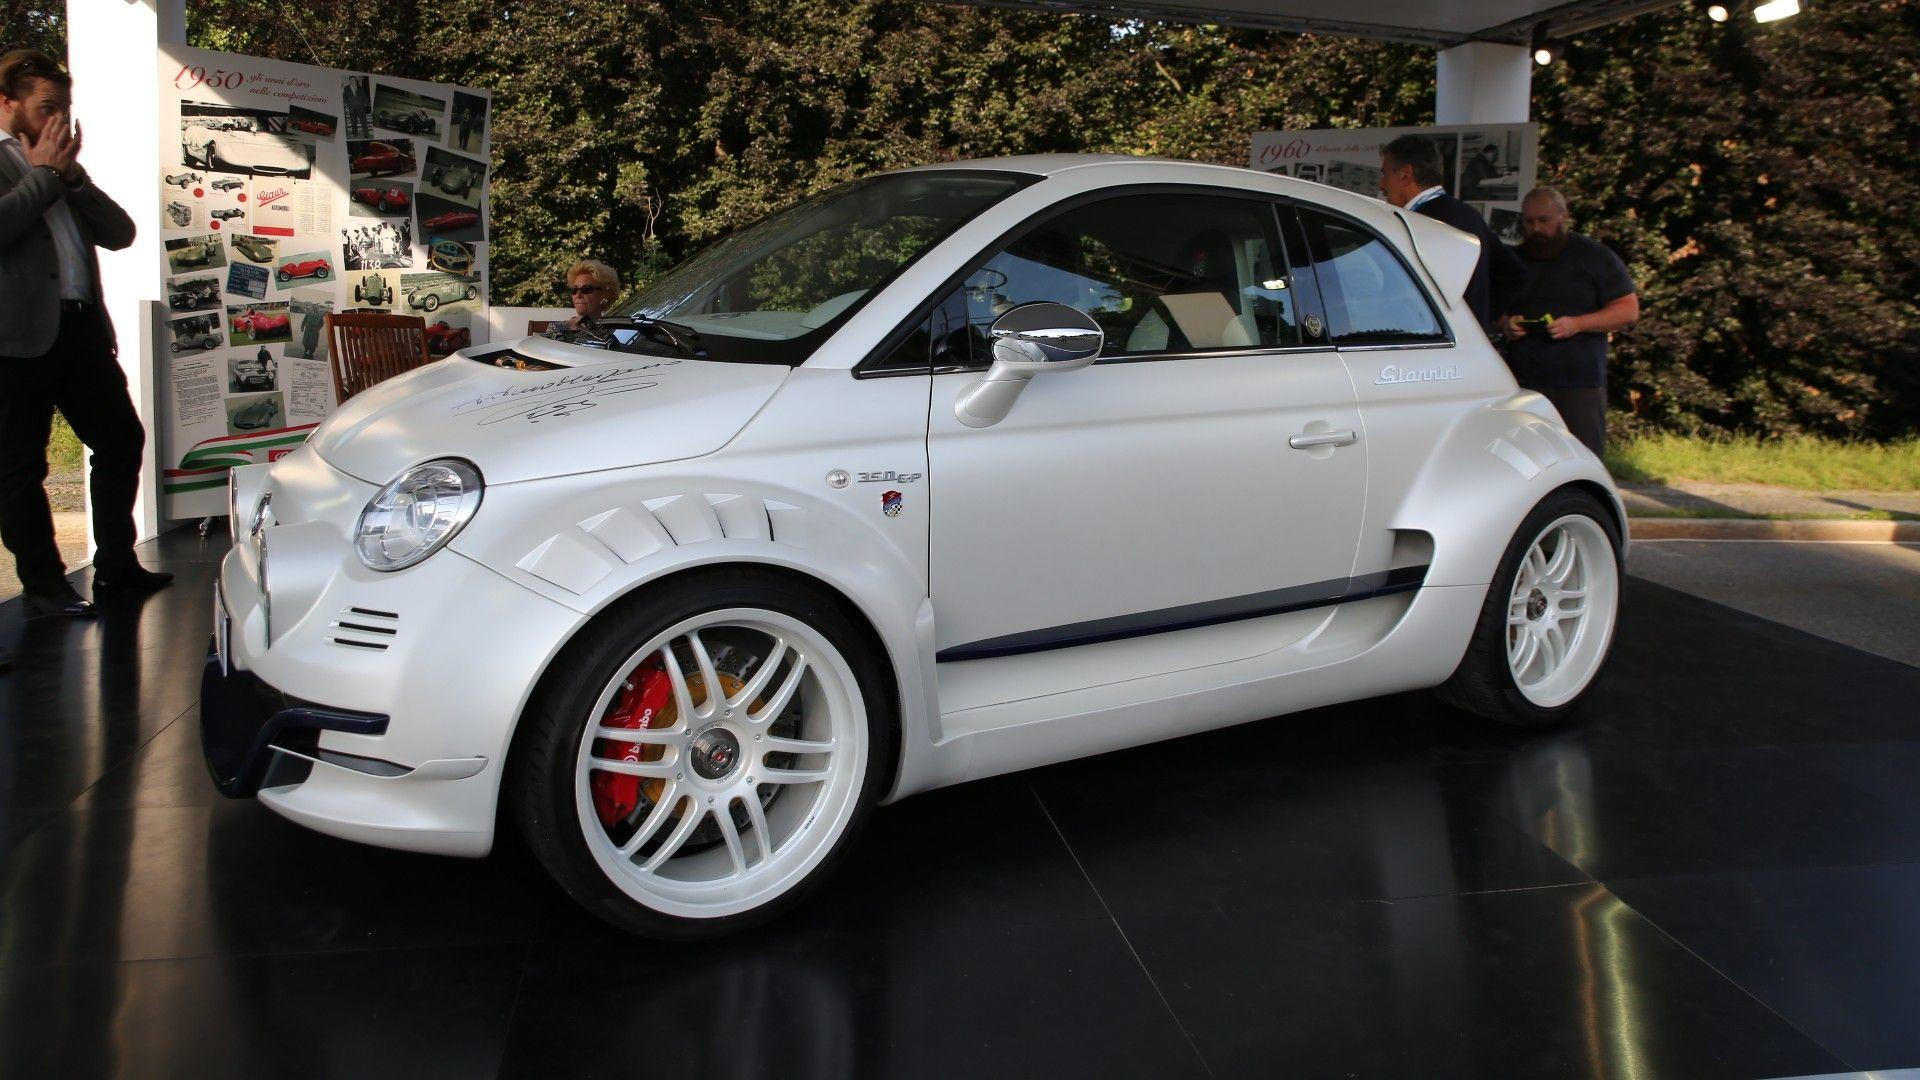 Fiat 500 Giannini Is Super City Car With 350 Hp From Alfa